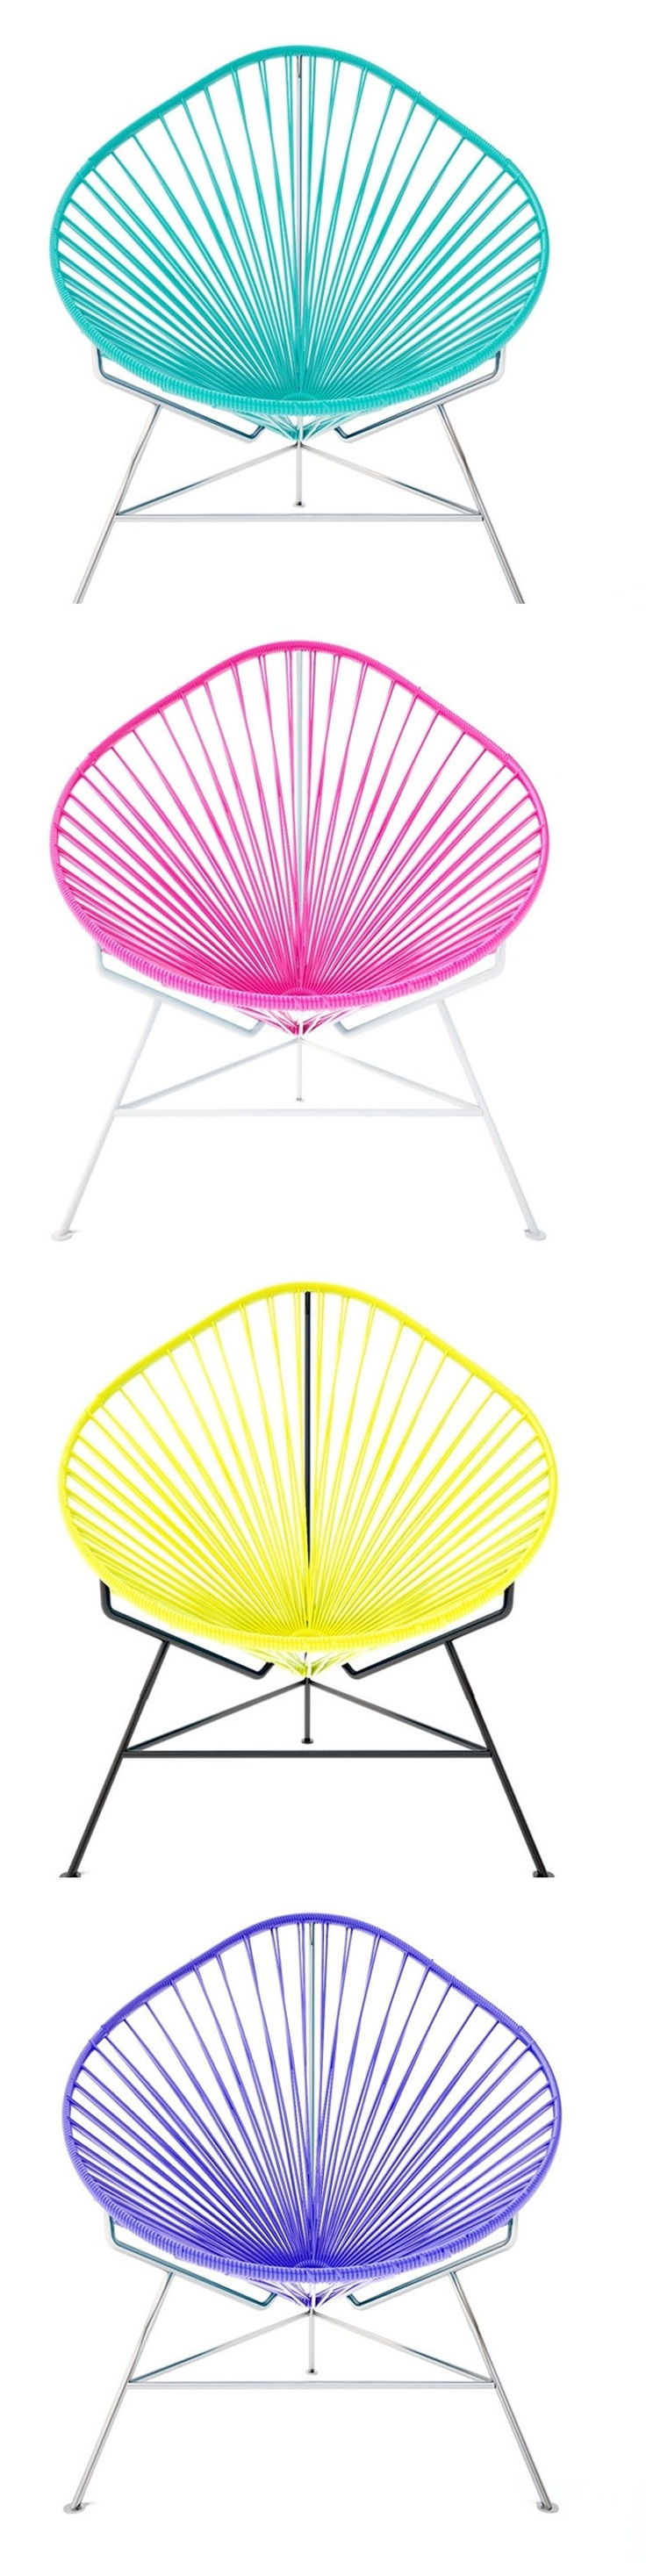 Acapulco chair cb2 - Wow These Chairs Are Awesome Acapulco